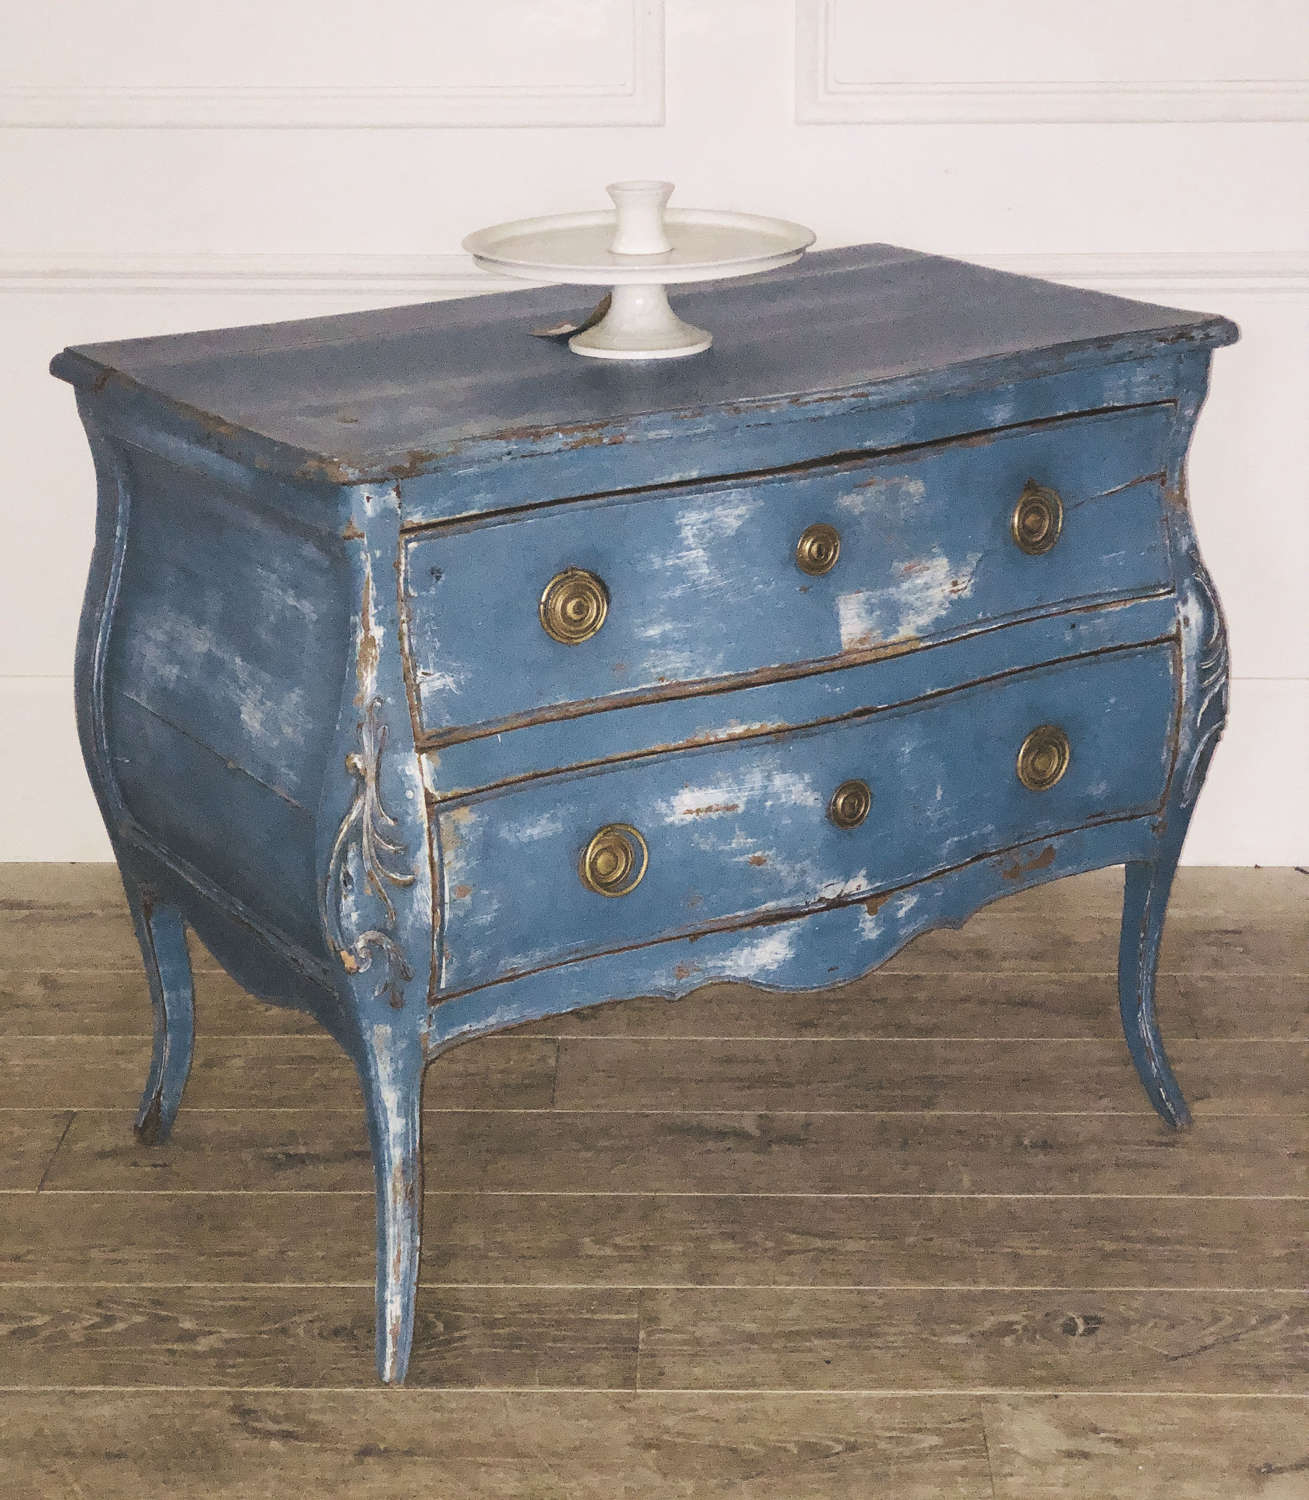 French 18th century Commode Bombee with 2 large drawers - circa 1780